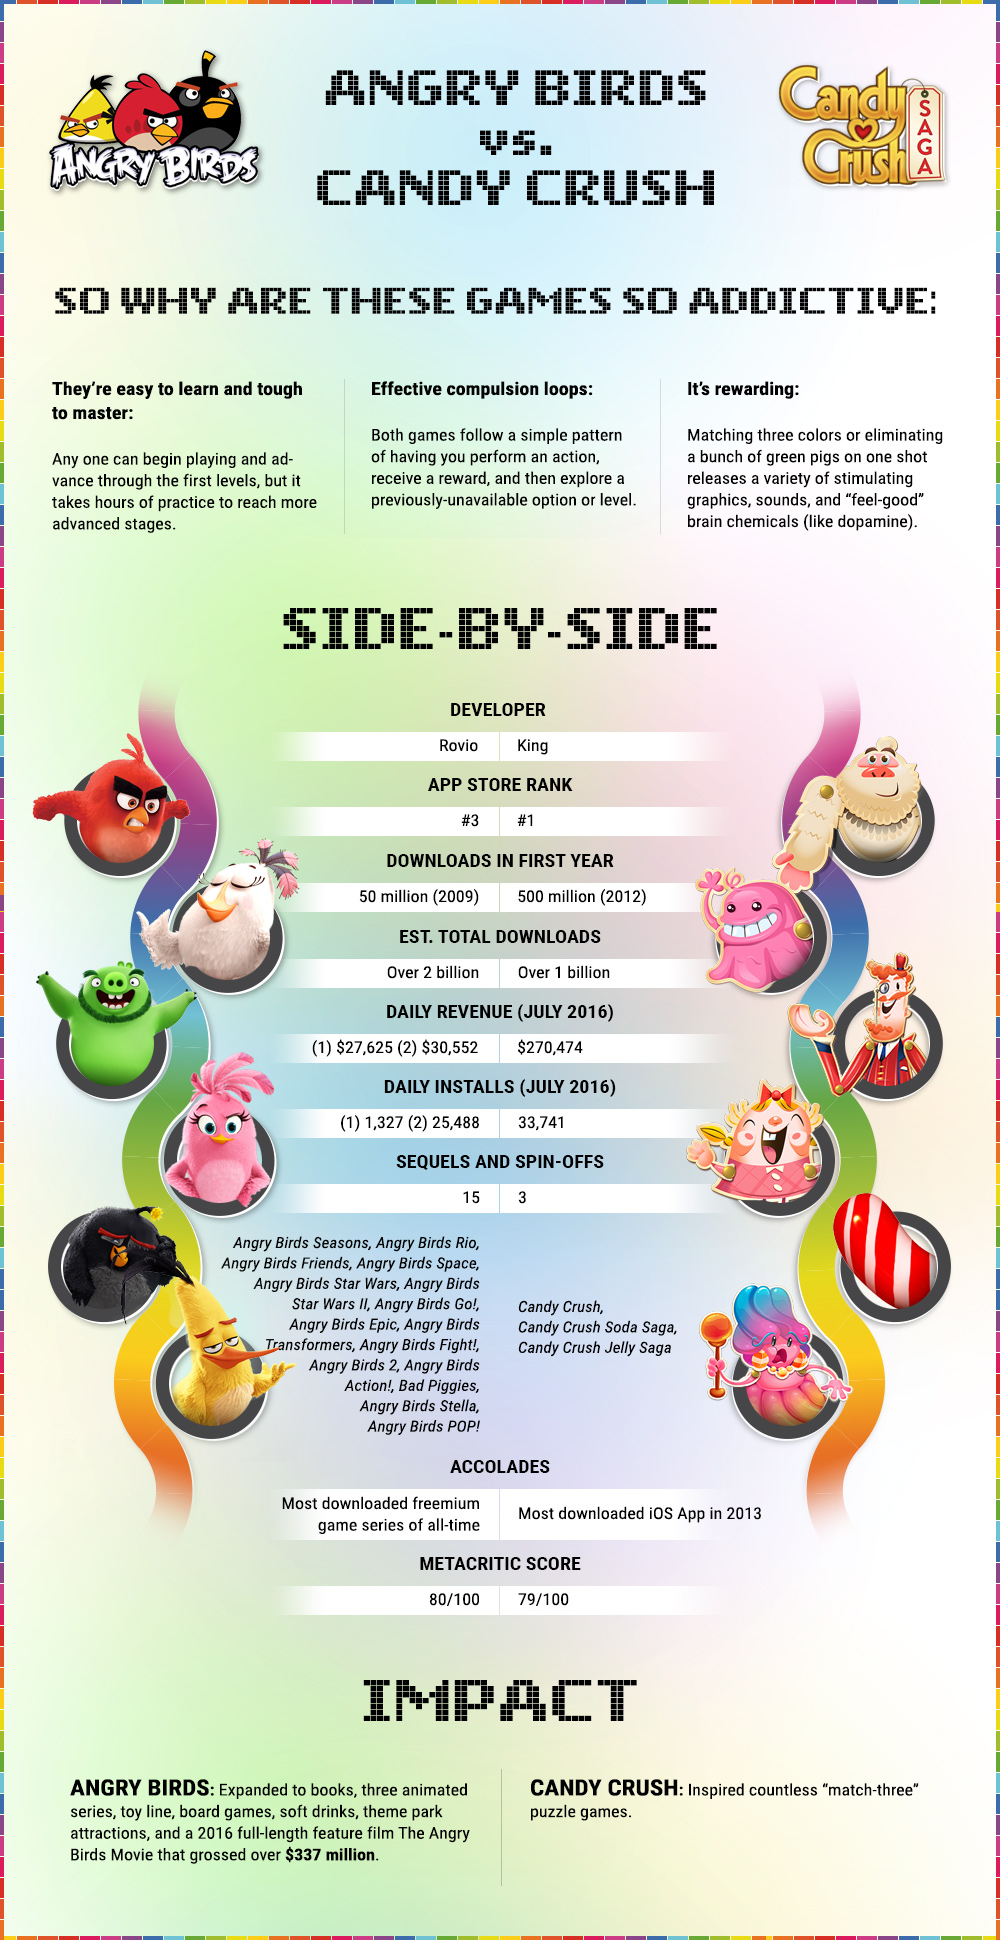 Angry Birds vs Candy Crush . (Source: appanie.com)